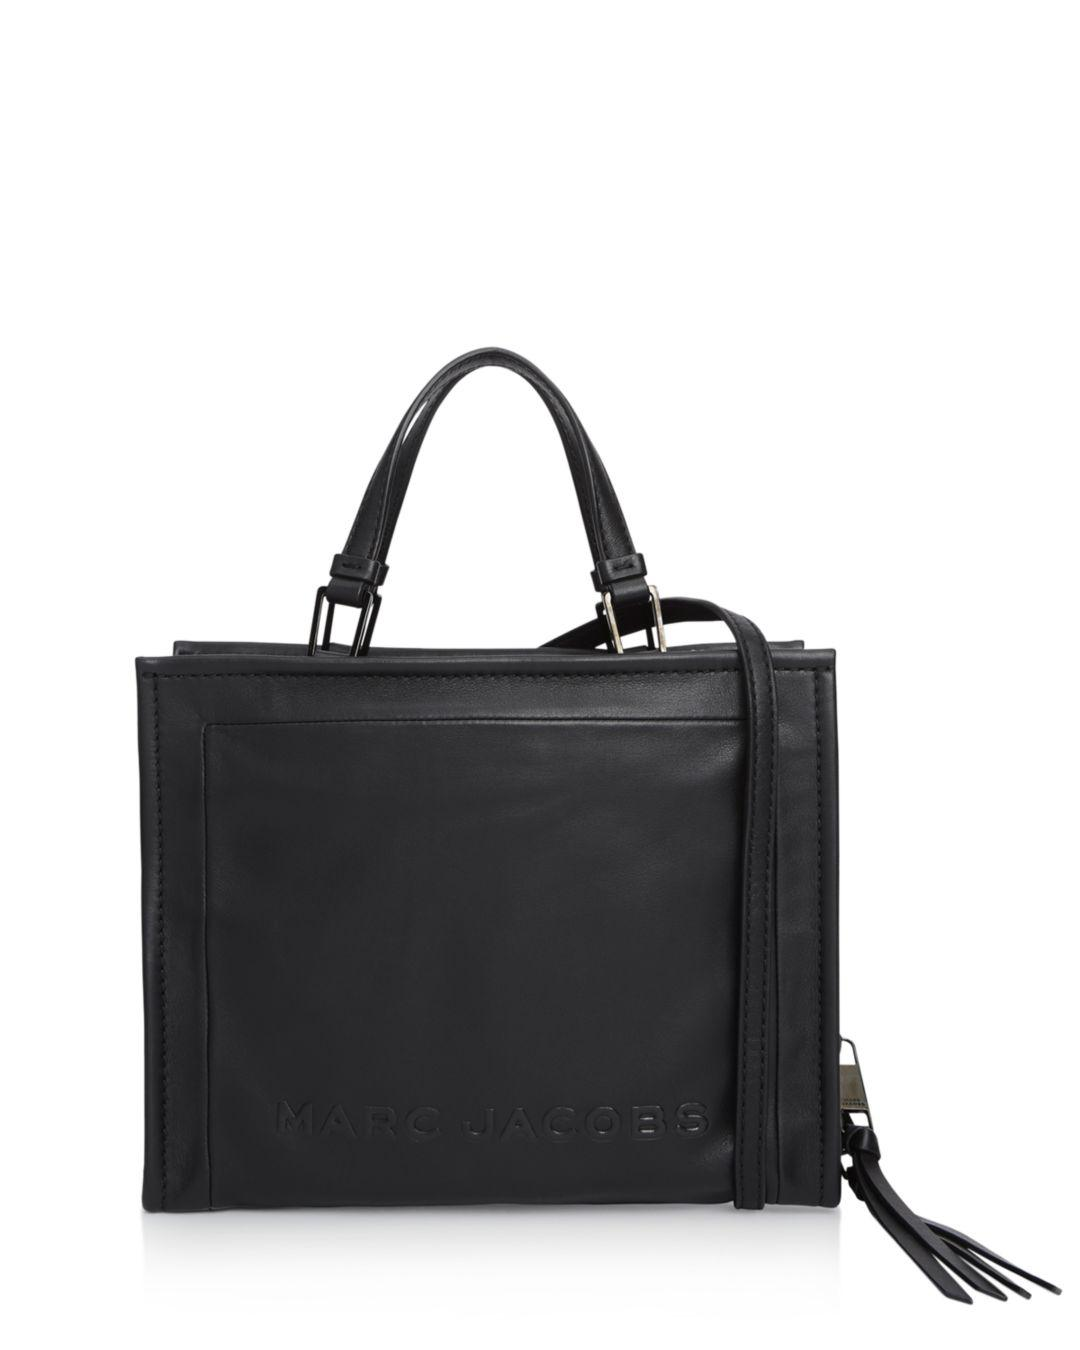 2843927a77a3 Marc Jacobs - Black The Box Large Leather Shopper Tote - Lyst. View  fullscreen